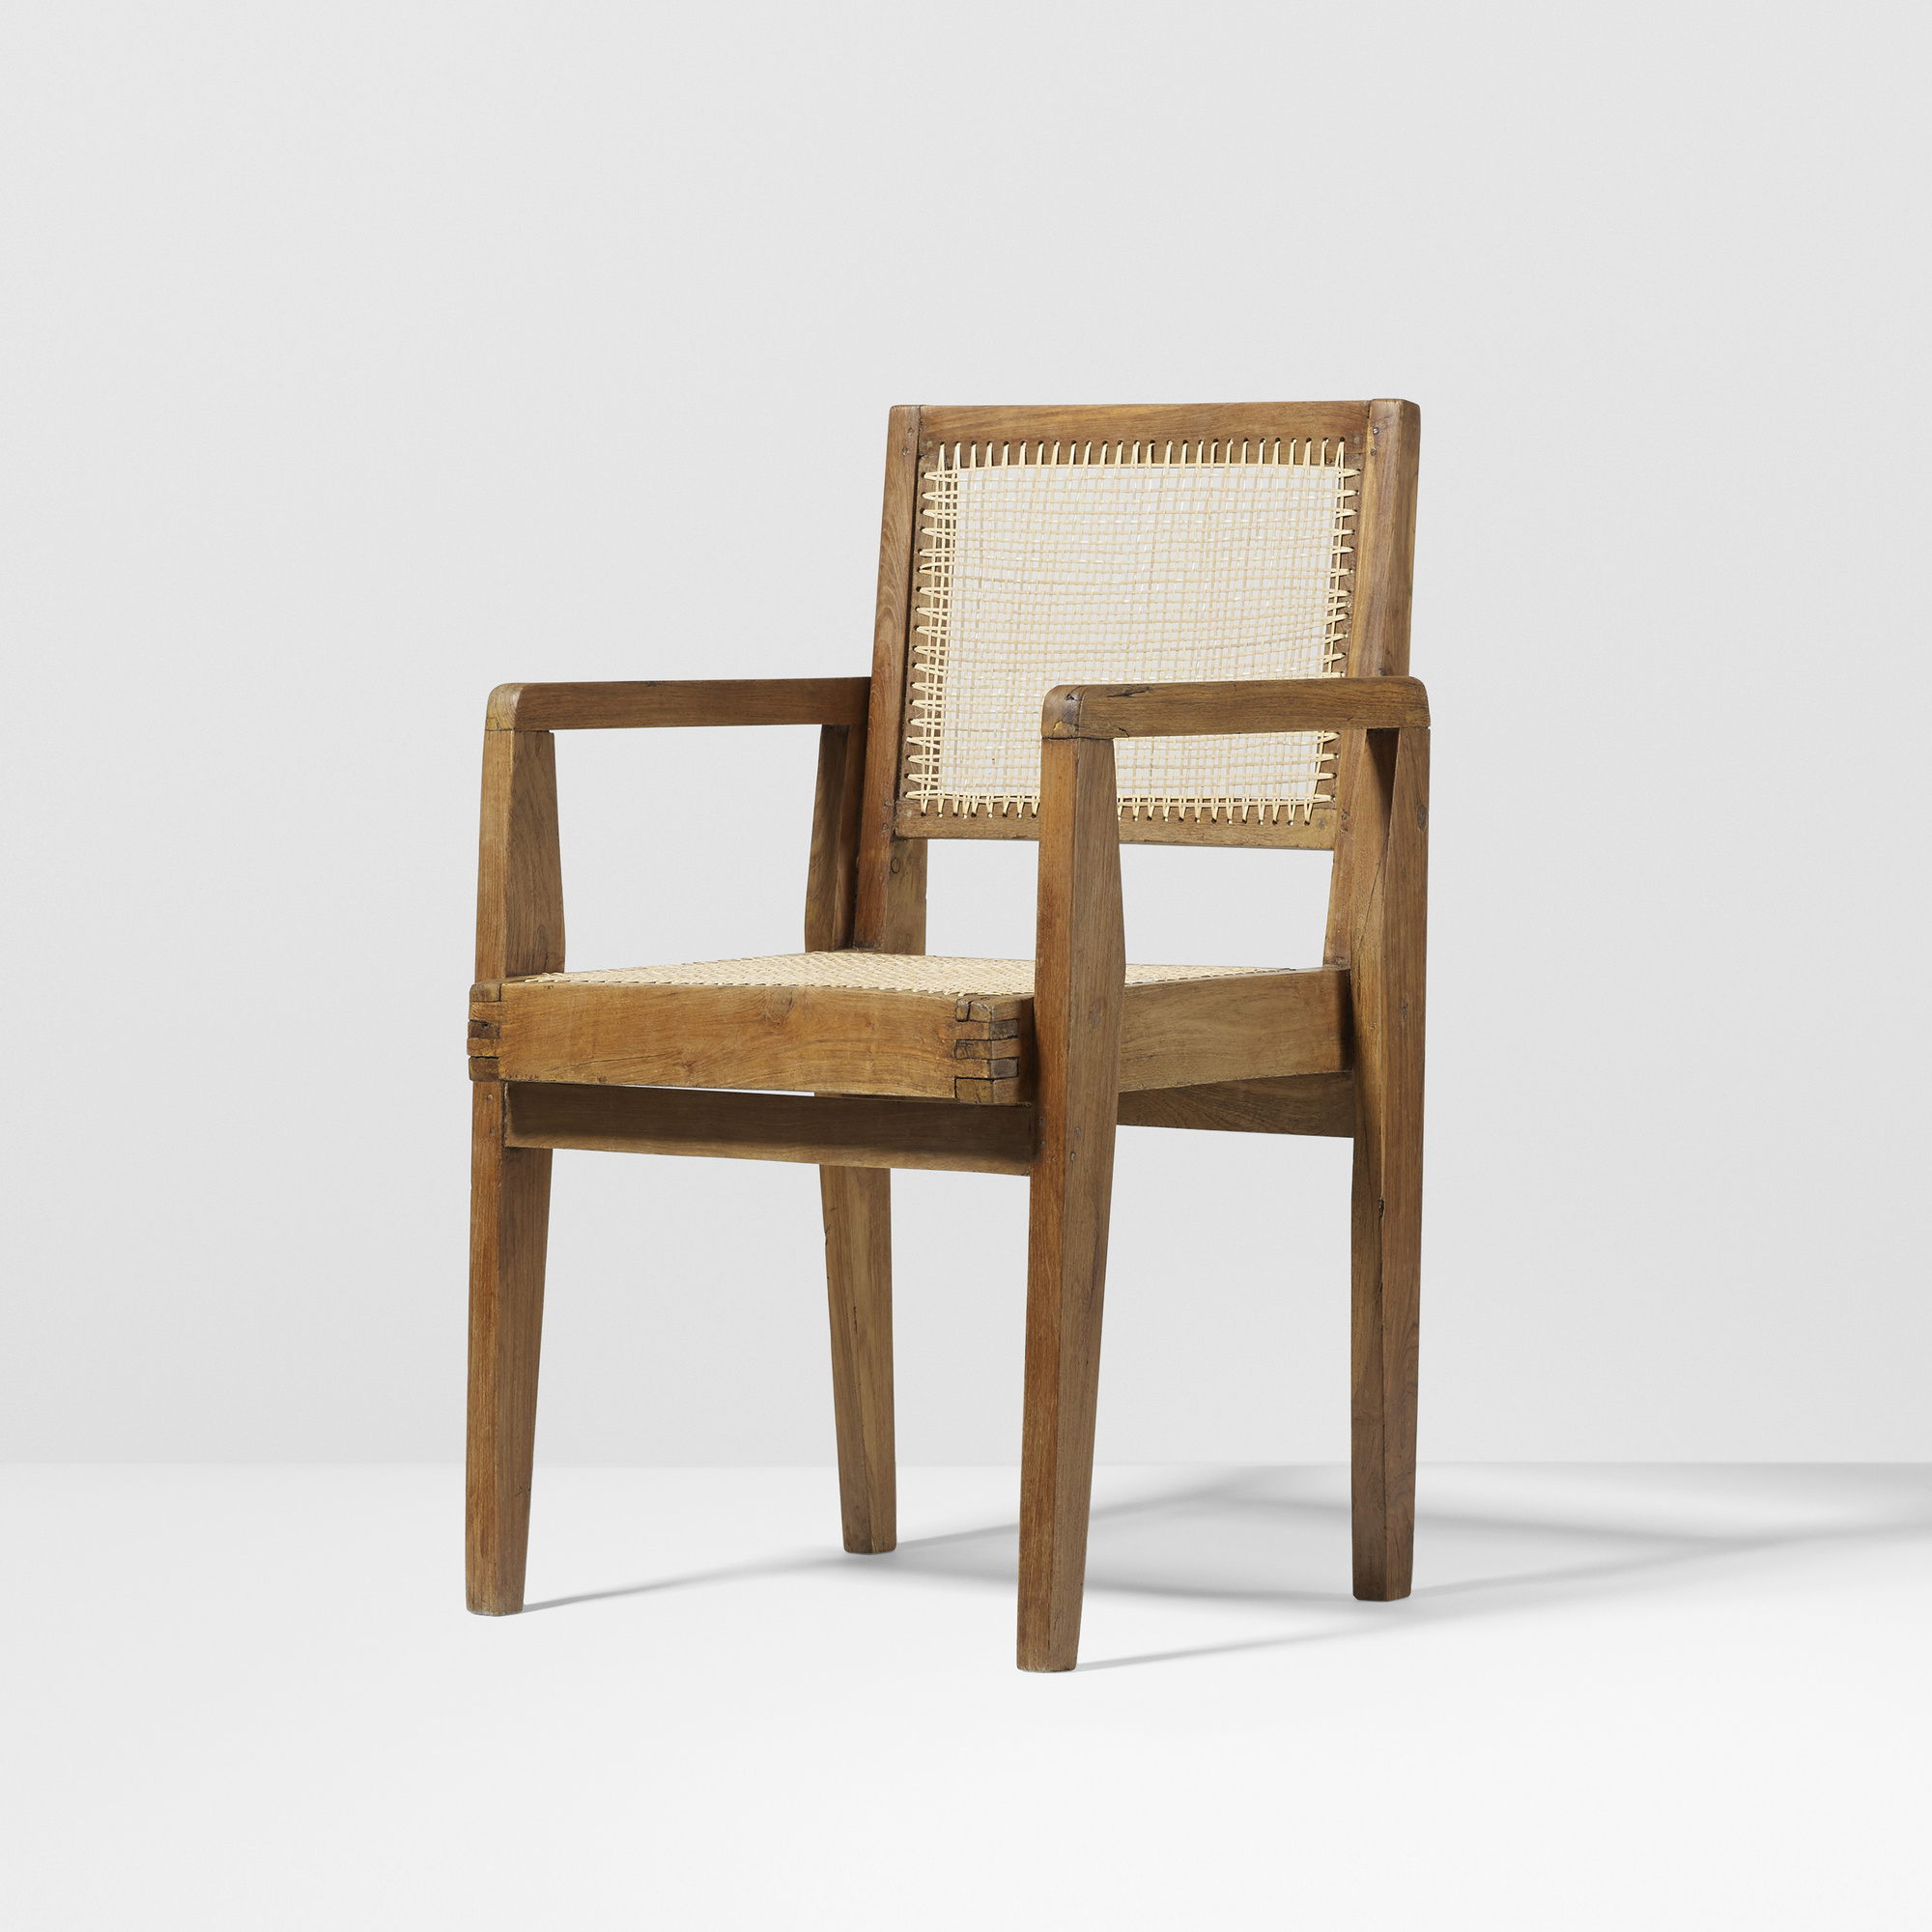 142: Pierre Jeanneret / Clerku0027s Chair From The High Court, Chandigarh (1 Of